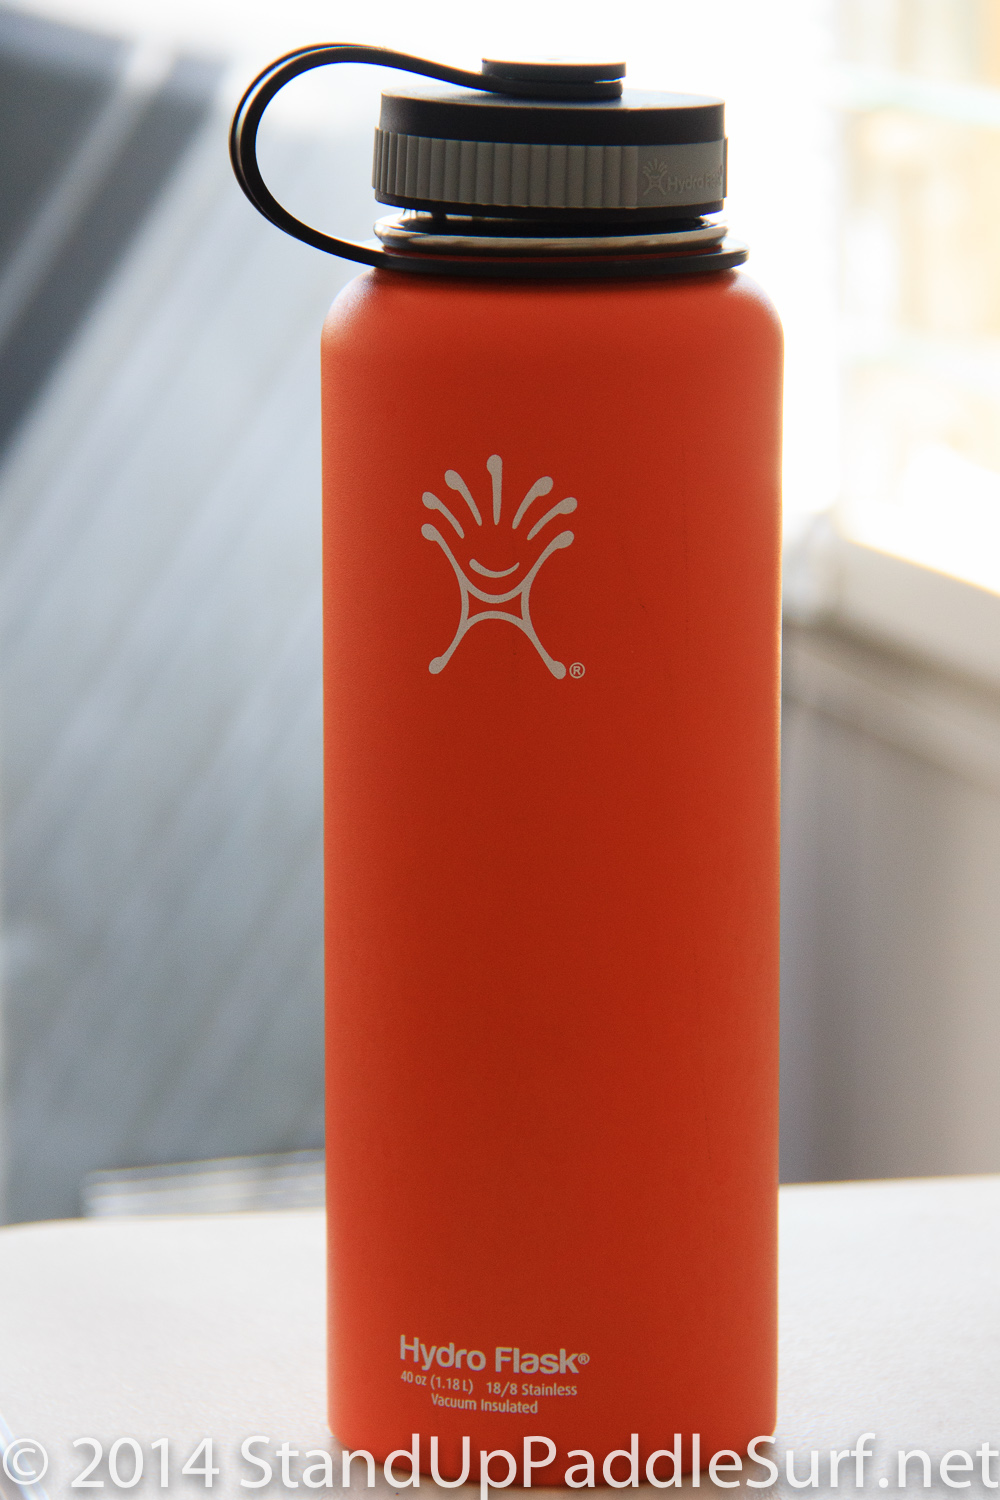 Hydro Flask Stainless Steel Vacuum Insulated Water Bottles